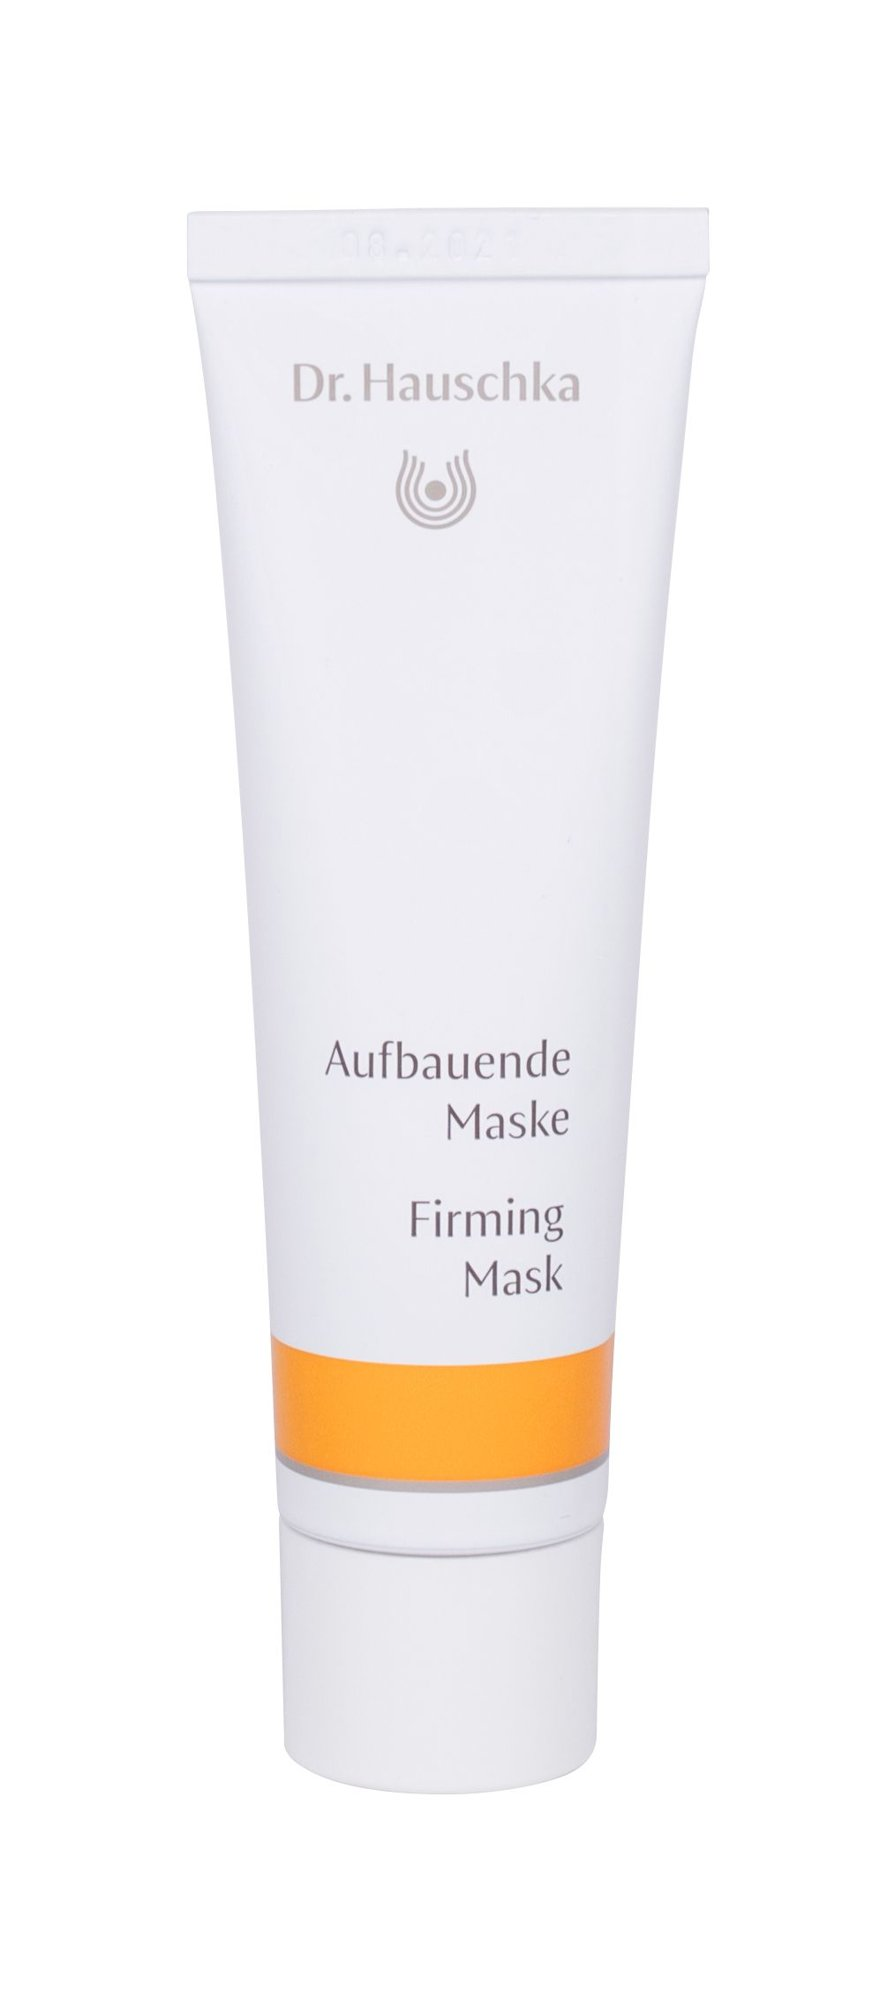 Dr. Hauschka Firming Face Mask 30ml